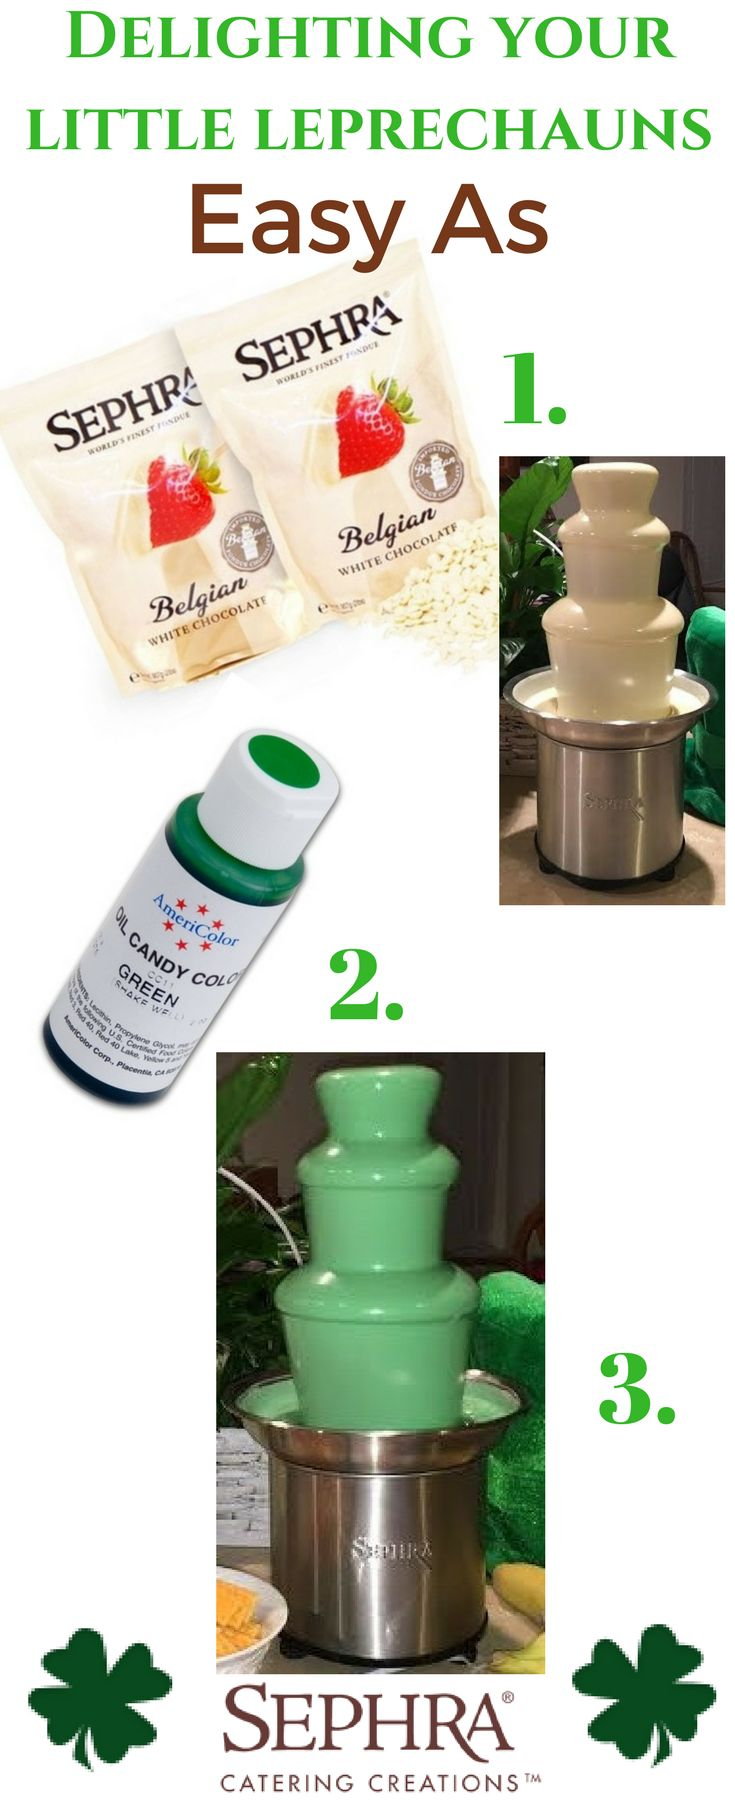 SO easy to WOW family, friends and all little Leprechauns dropping by on St. Patty's Day! Grab a Sephra Select Home Fondue Fountain - the uses are endless!  Some Sephra Belgian White Chocolate to tickle your taste buds - it's creamy and delish. Lastly a little bottle of our oil based GREEN Chocolate Coloring. This is a must - do not use regular food coloring. https://www.sephra.com/oil-based-chocolate-coloring-green Melt; Color; Dip!  #stpatricksday #greenfondue #fonduefountain